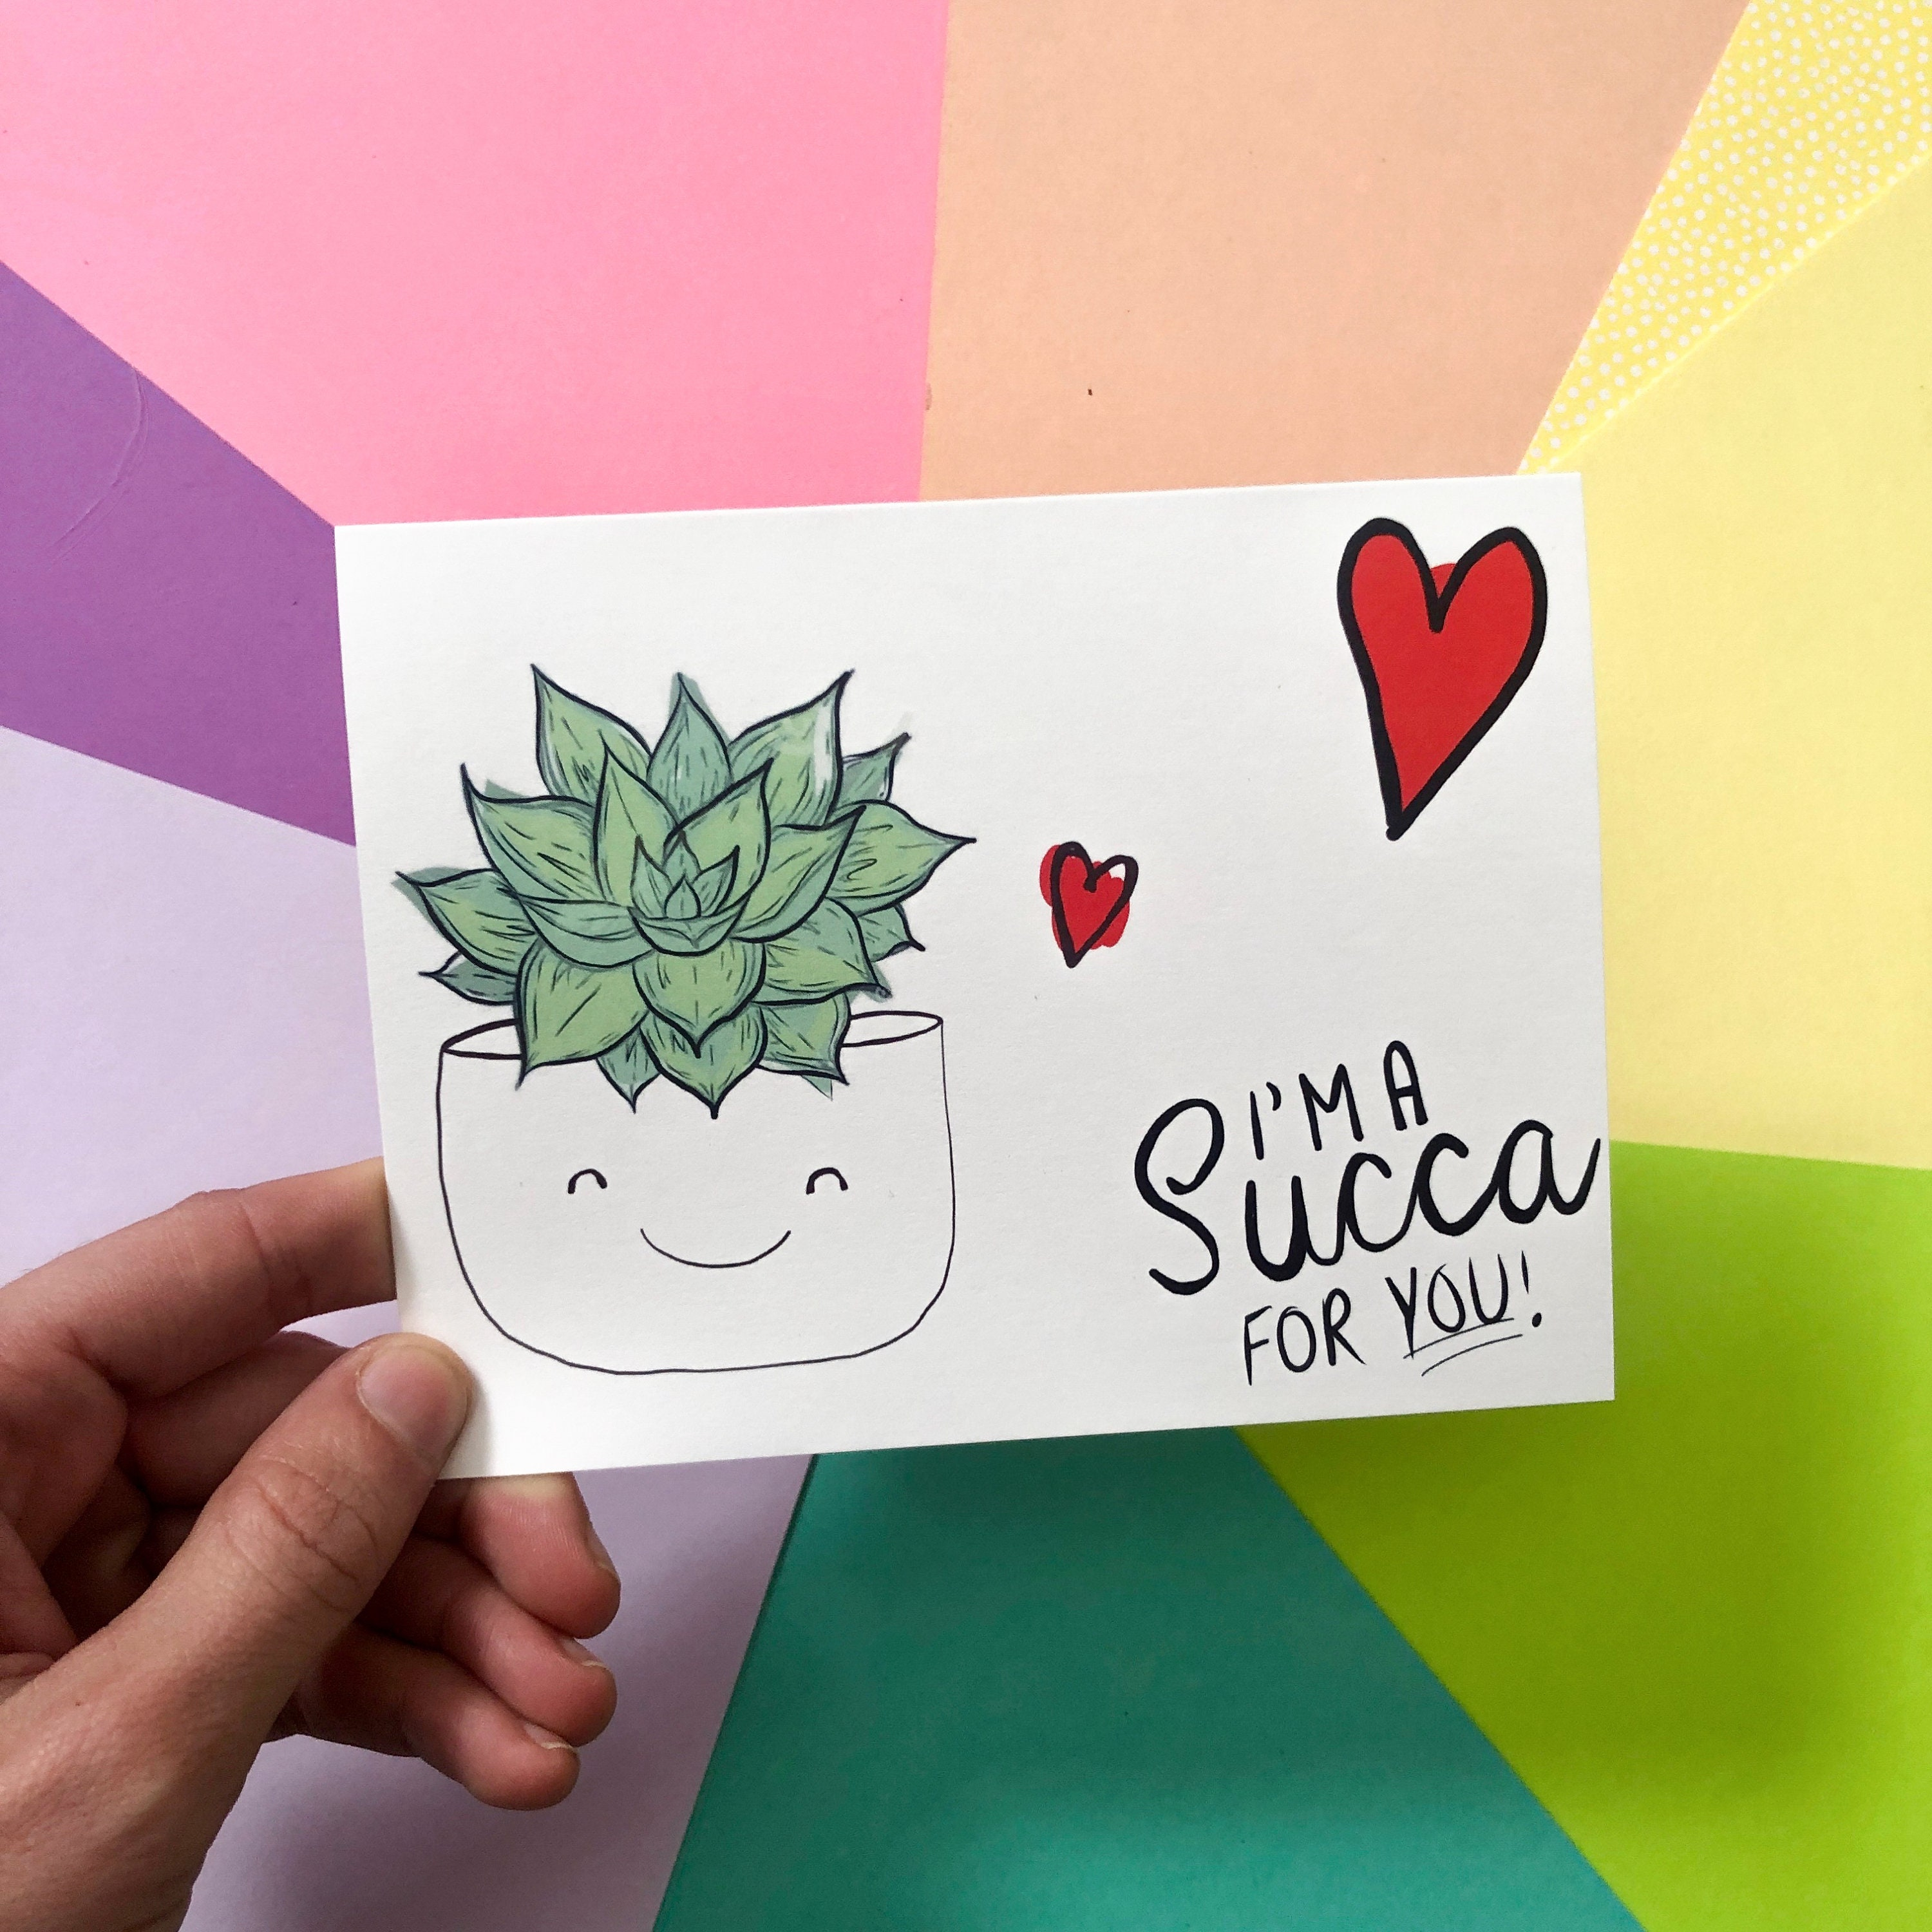 Valentines Day Succulent Greeting Card Cute Cards Succulent Gifts Plant Gifts House Plants